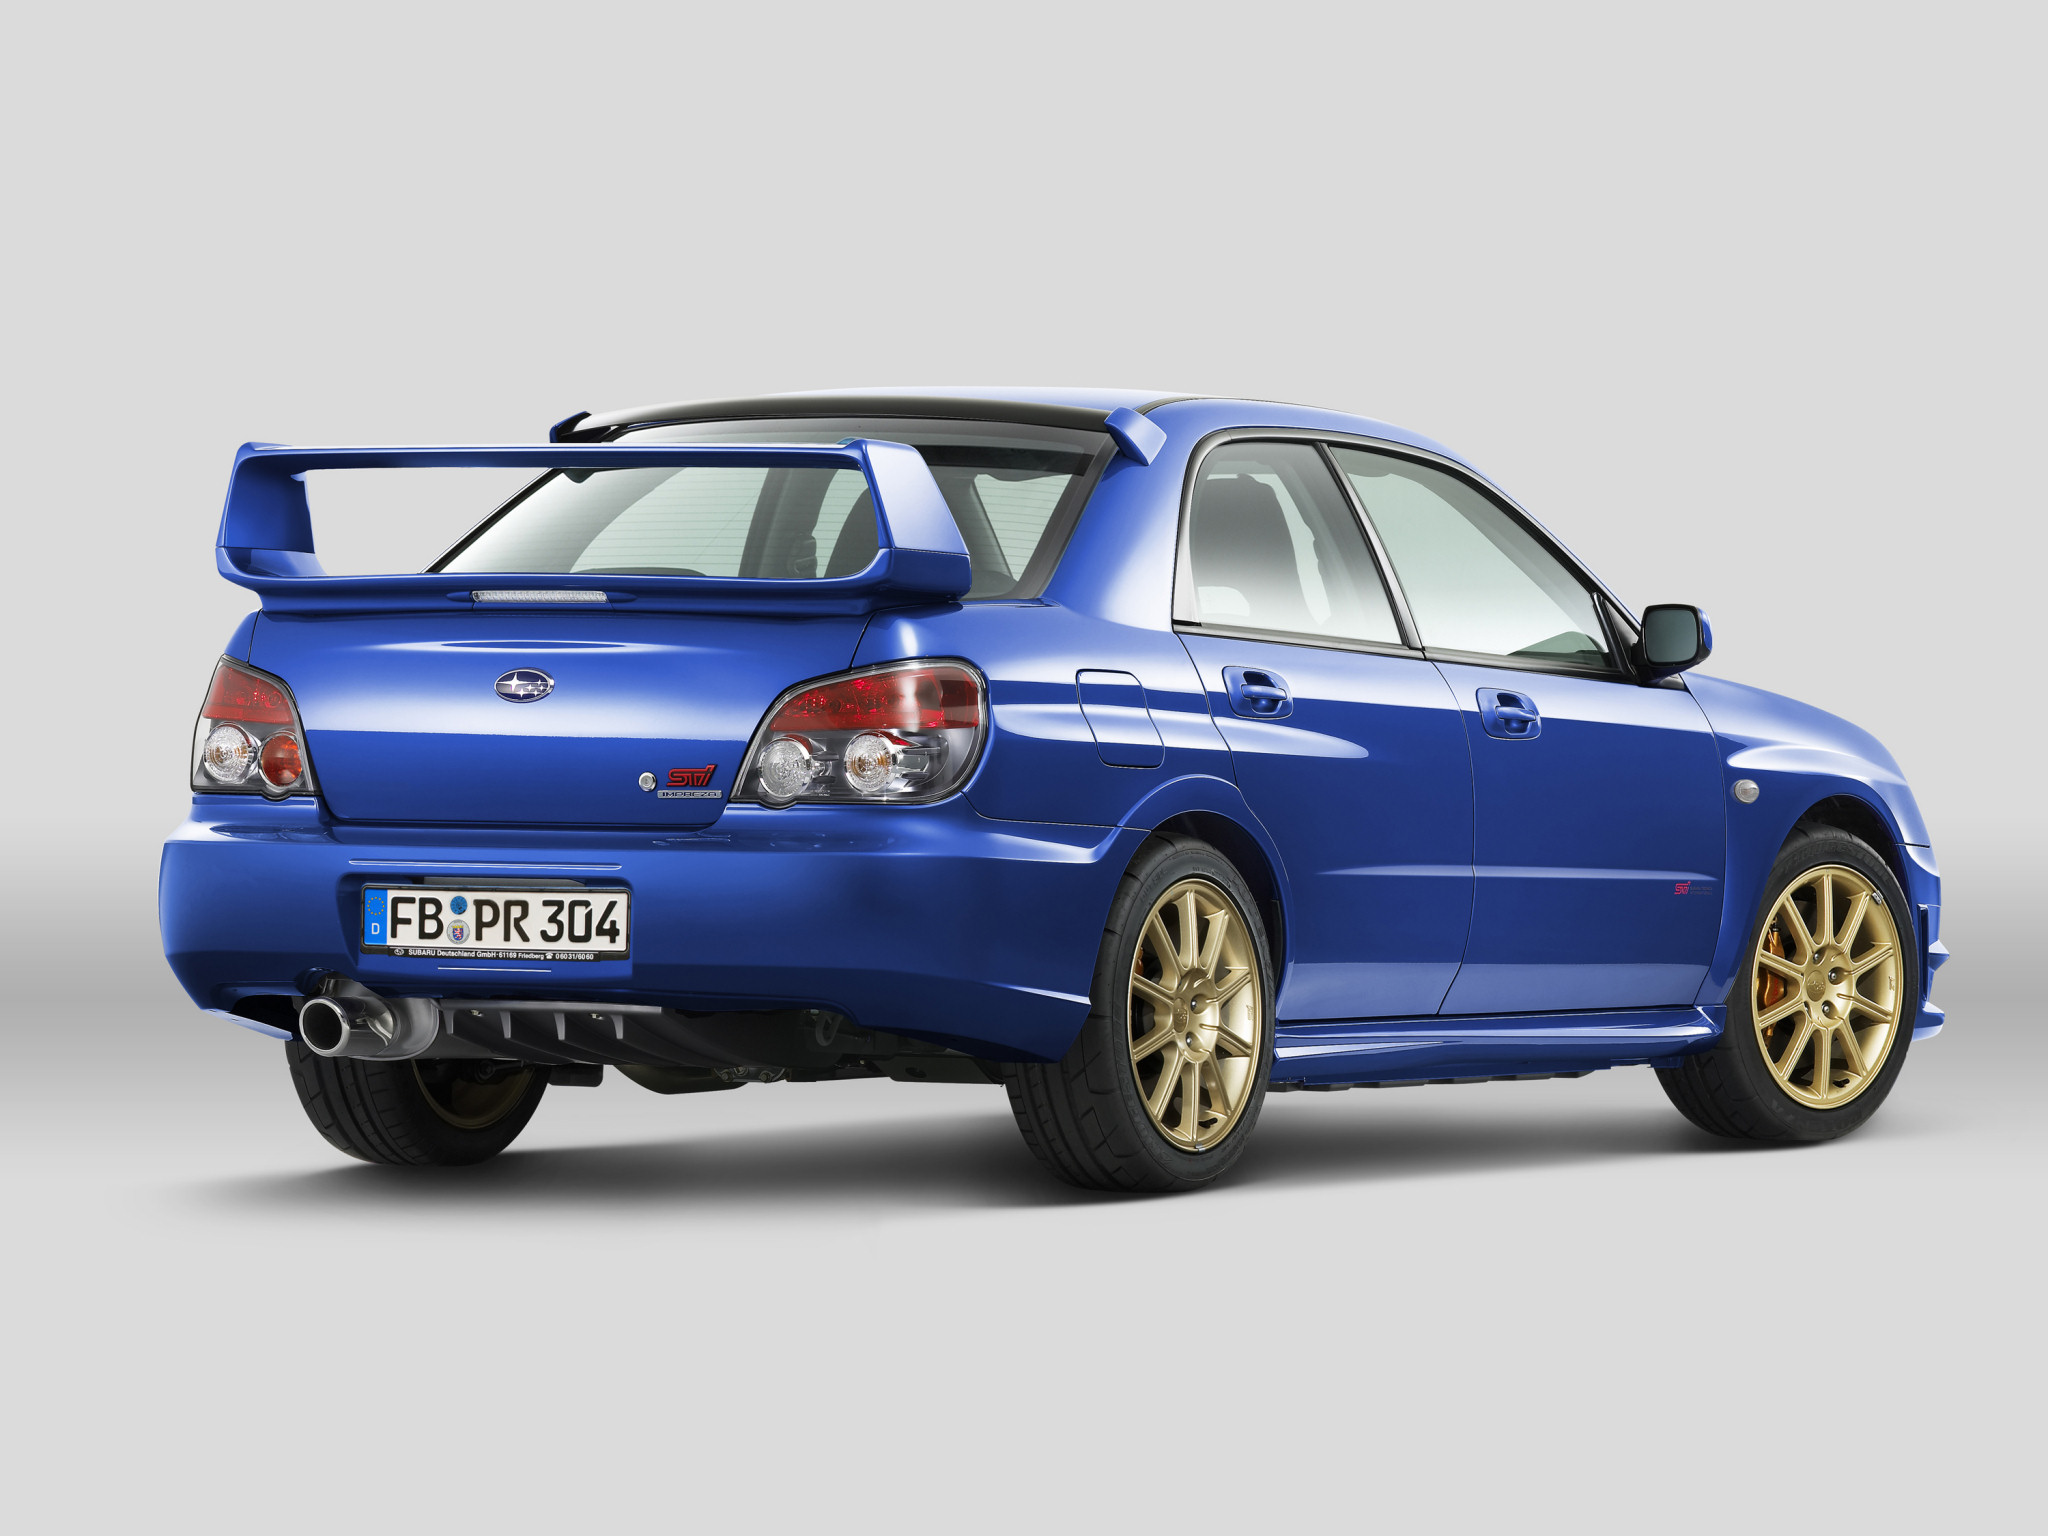 subaru impreza wrx sti 2006 subaru impreza wrx sti 2006 photo 08 car in pictures car photo. Black Bedroom Furniture Sets. Home Design Ideas